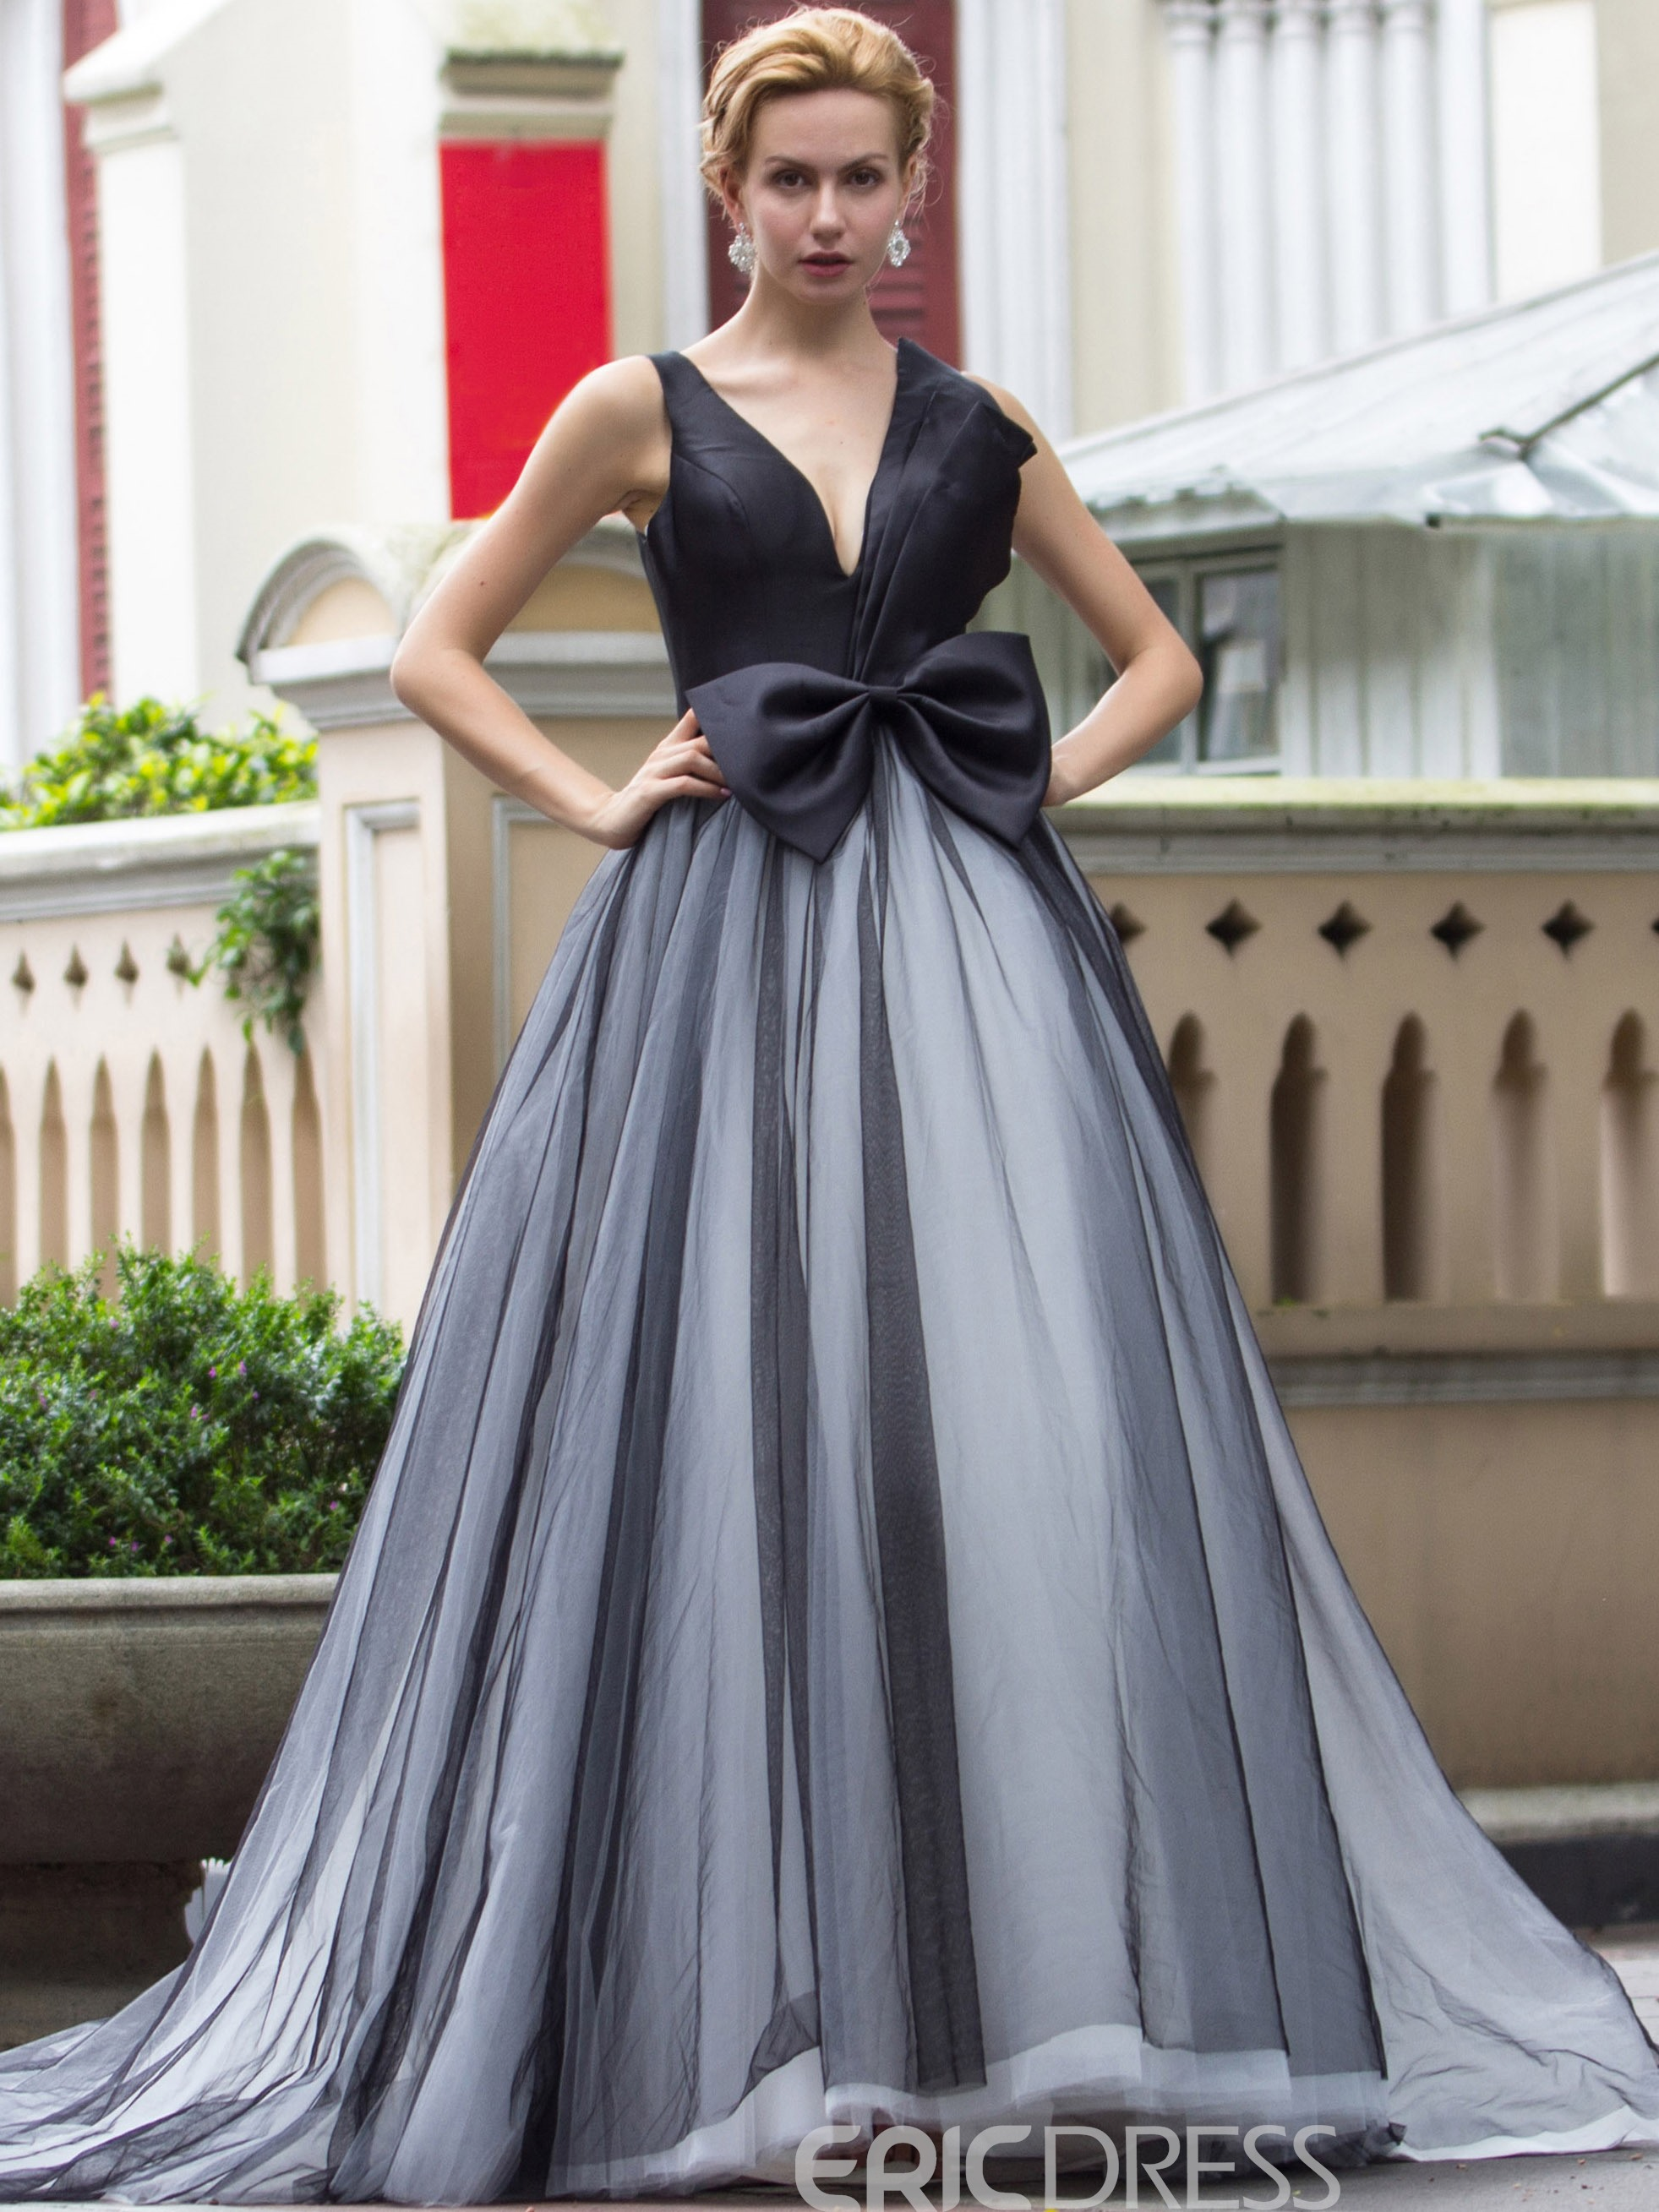 a97b3c3b93ea80 Ericdress V-Neck Ball Gown Bowknot Court Train Quinceanera Dress |  ExtraordinaryDresses.com